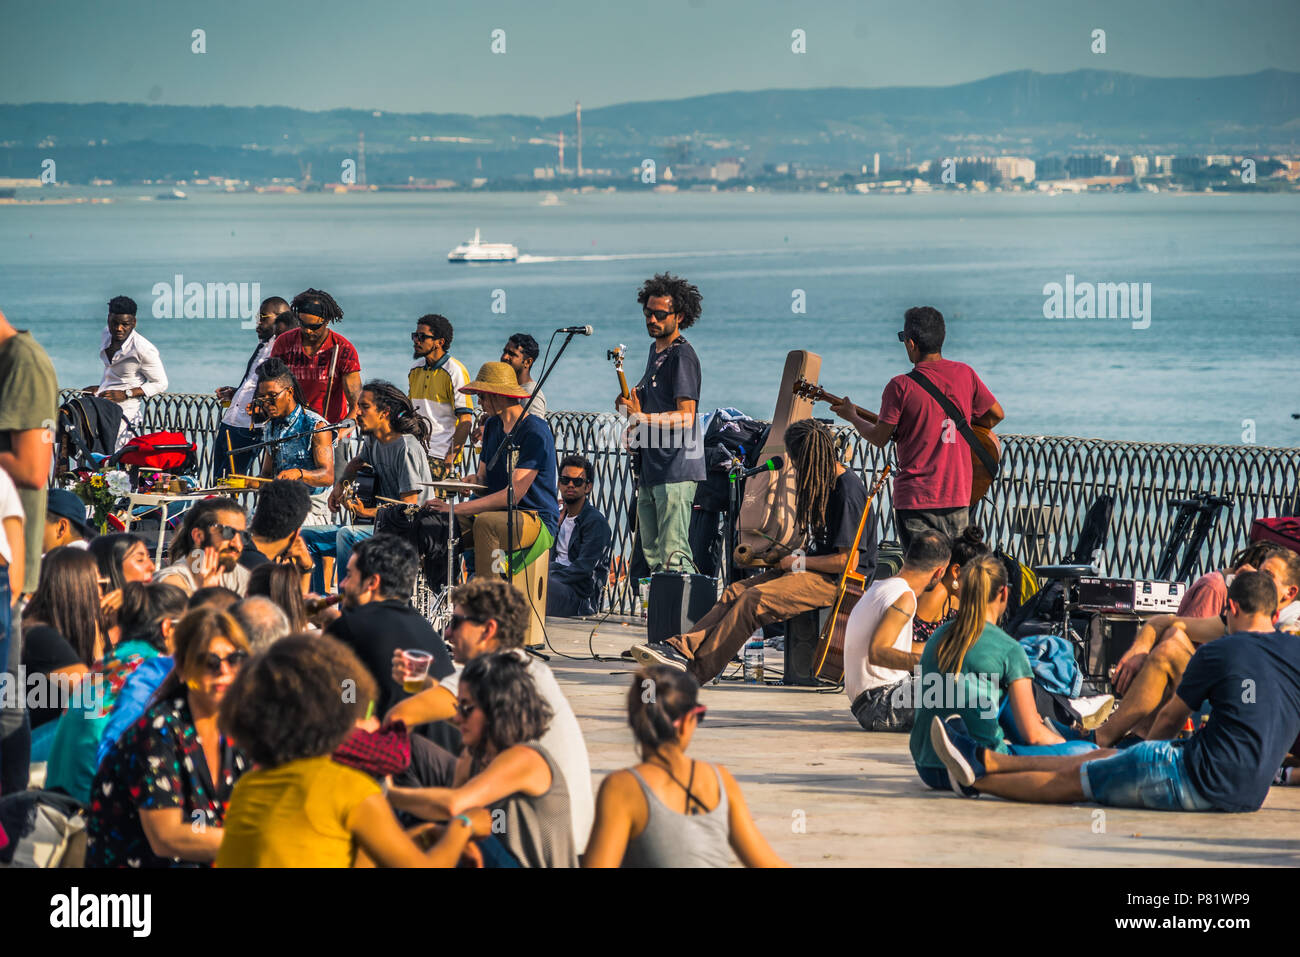 Lisbon, Portugal, musicians and audience at Miradouro de Santa Catarina - Stock Image